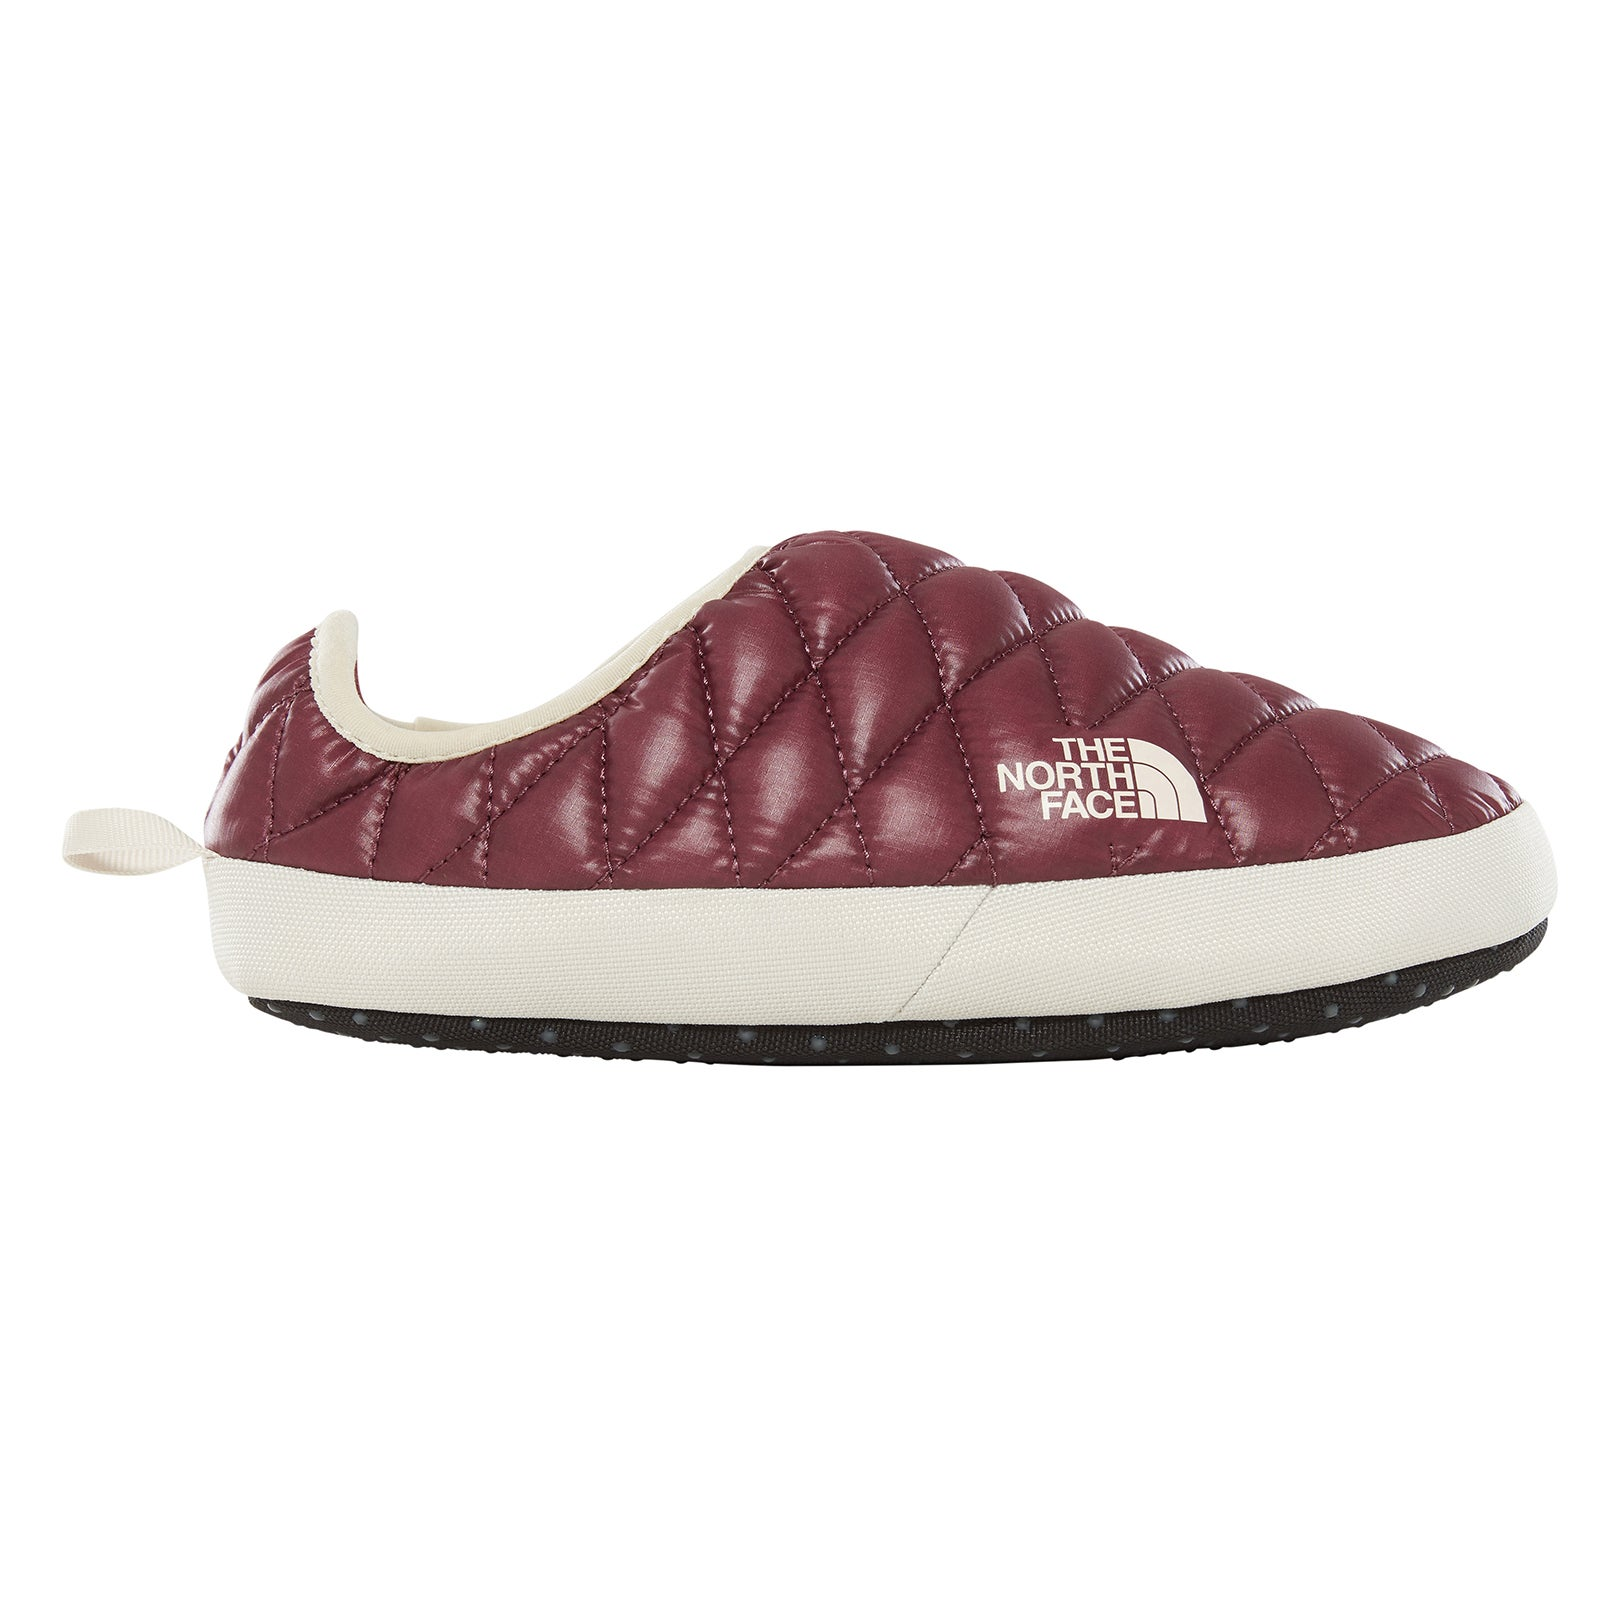 North Face Thermoball Tent Mule IV Womens Slippers - Shiny Fig Vintage White